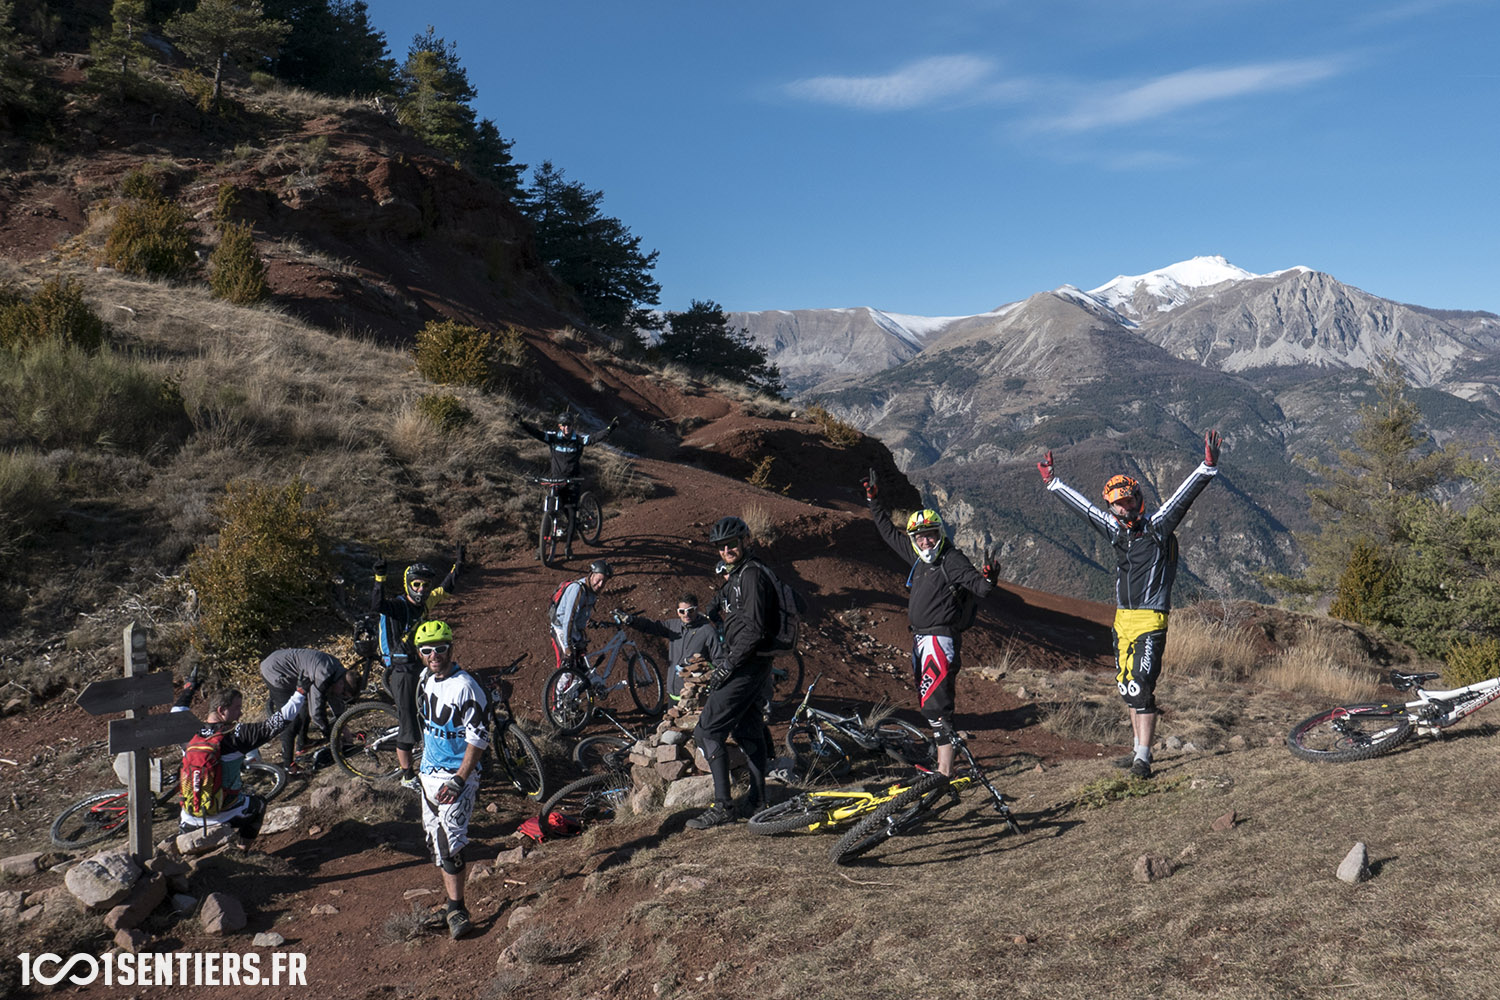 1001sentiers-session-enduro-alpes-maritimes-vtt-p1100264